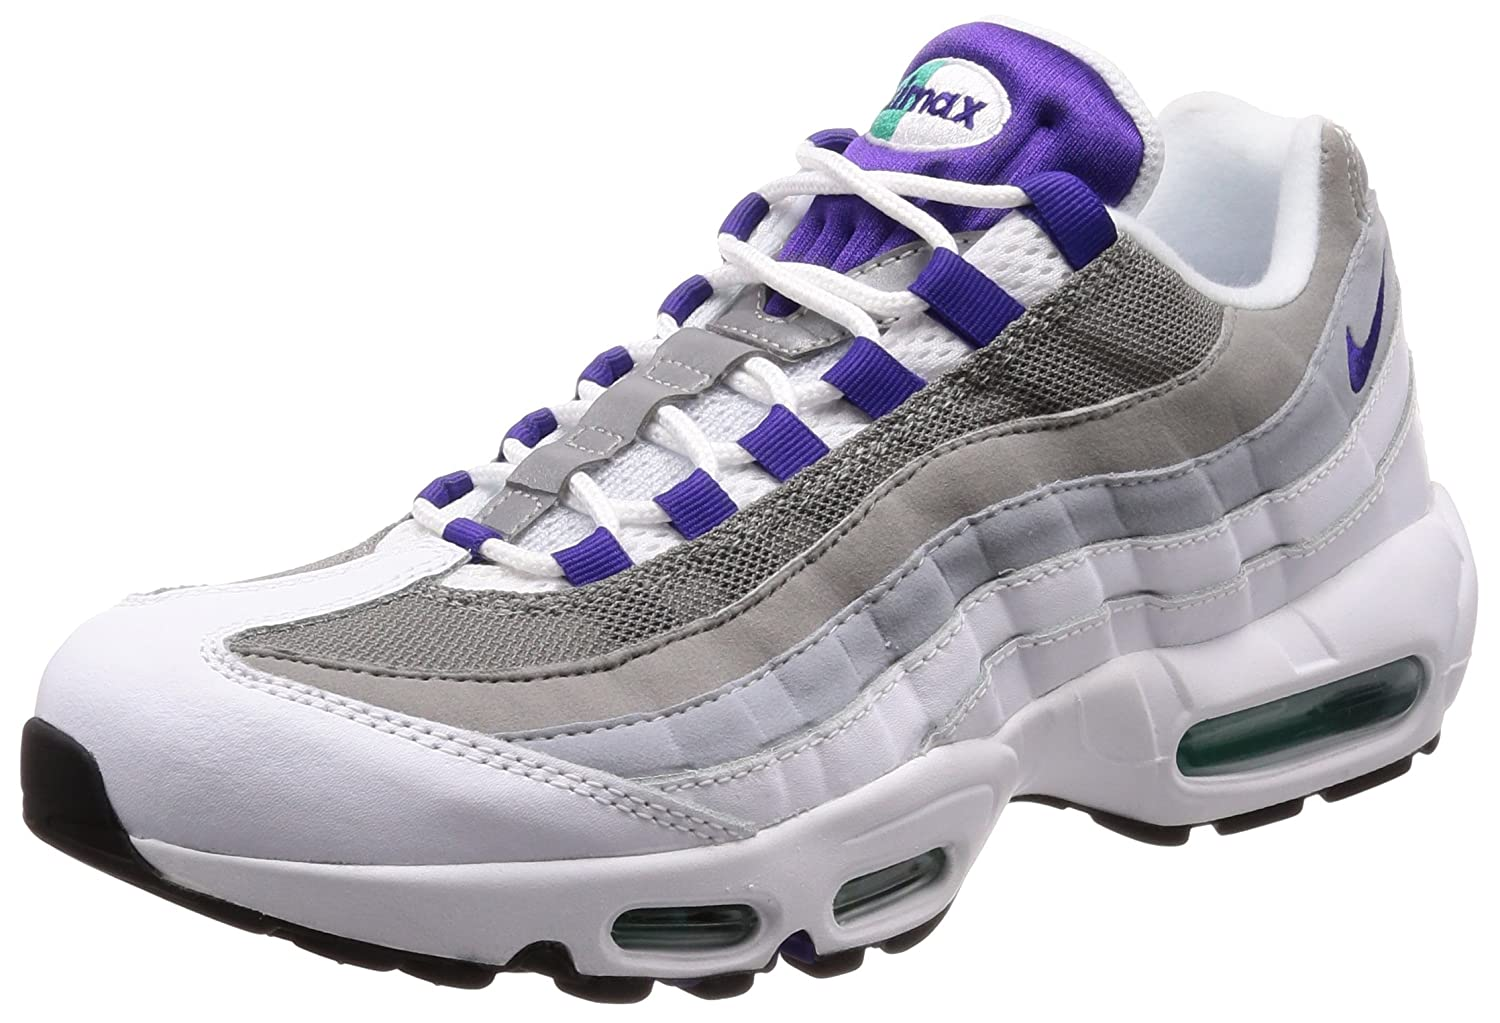 uk availability ba253 b31a0 Amazon.com | Nike Women's WMNS Air Max 95 Trainers ...